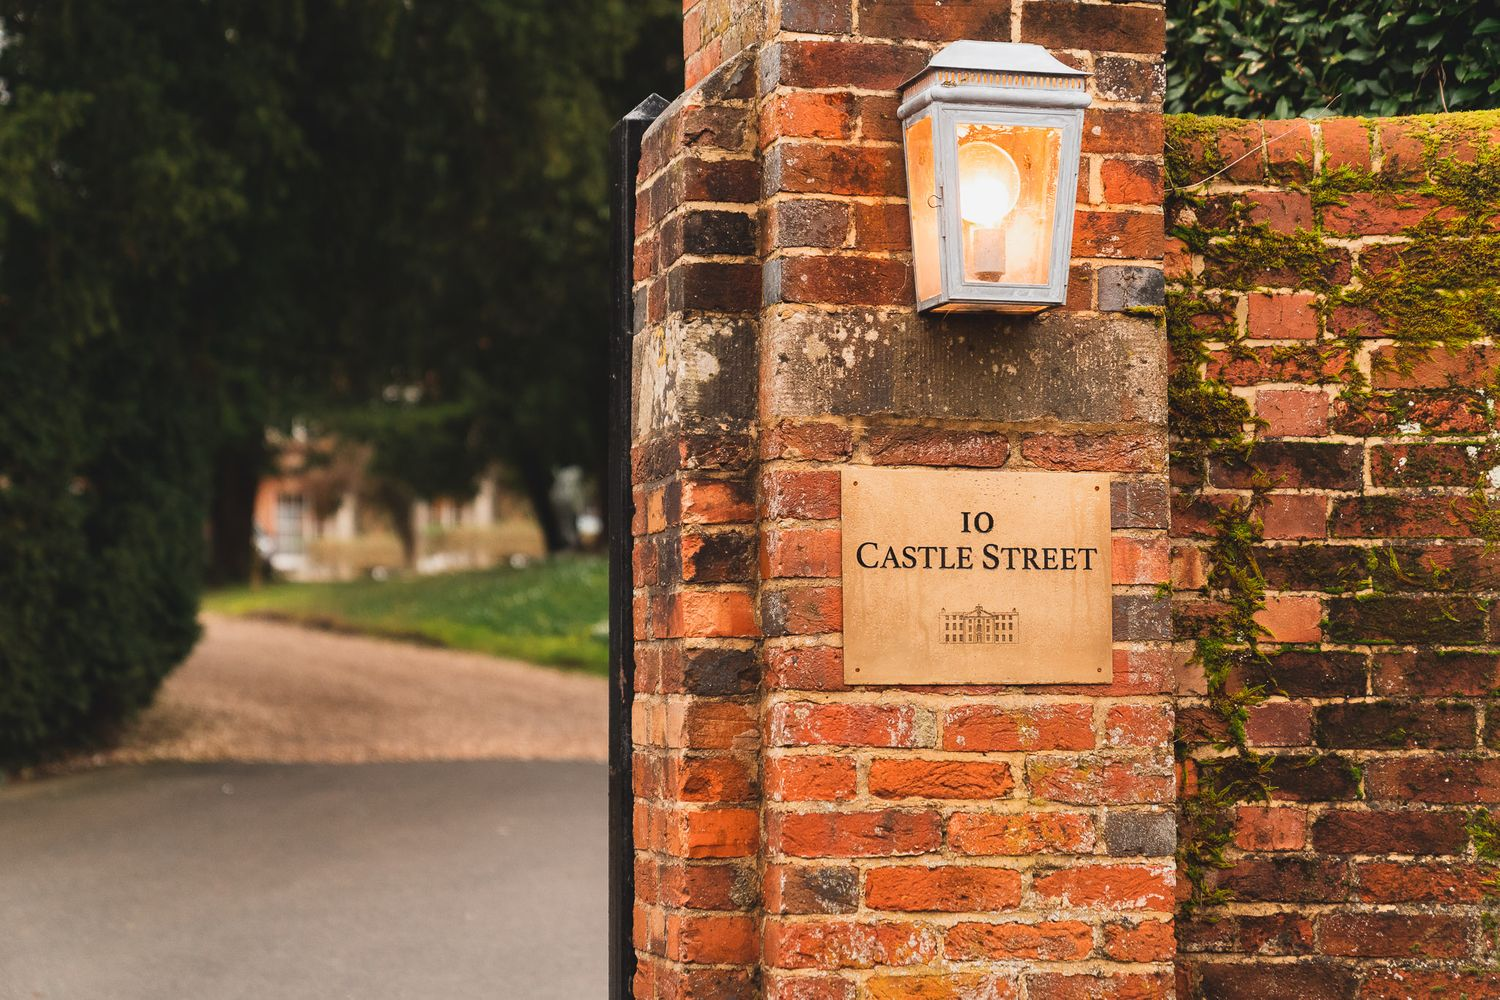 Entrance to 10 Castle Street, Dorset country house wedding venue.